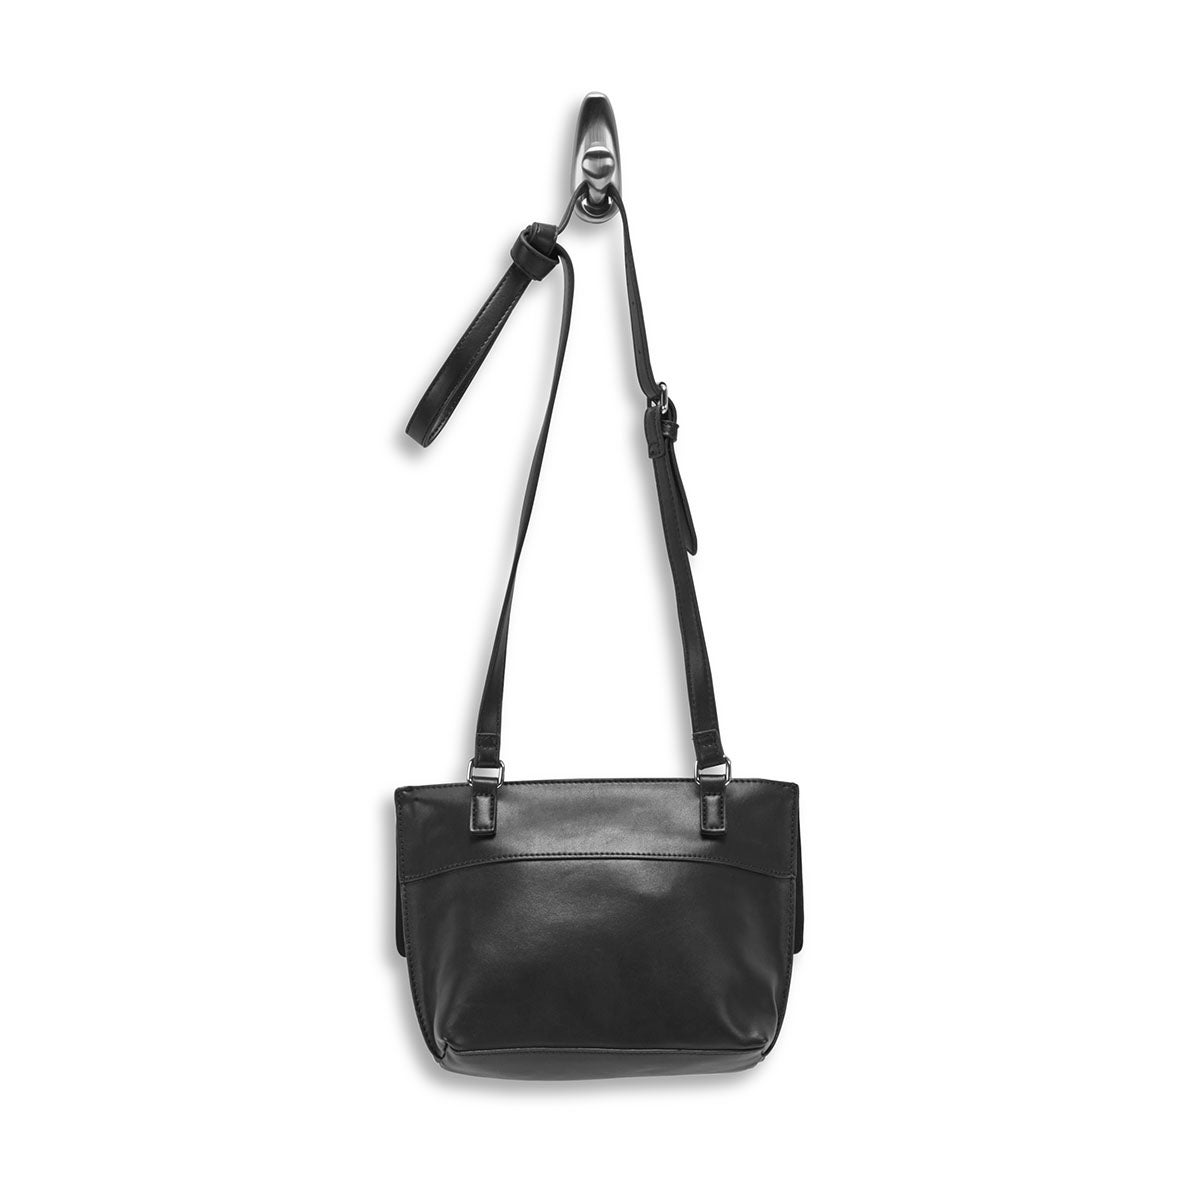 Lds Roots73 black flap crossbody bag